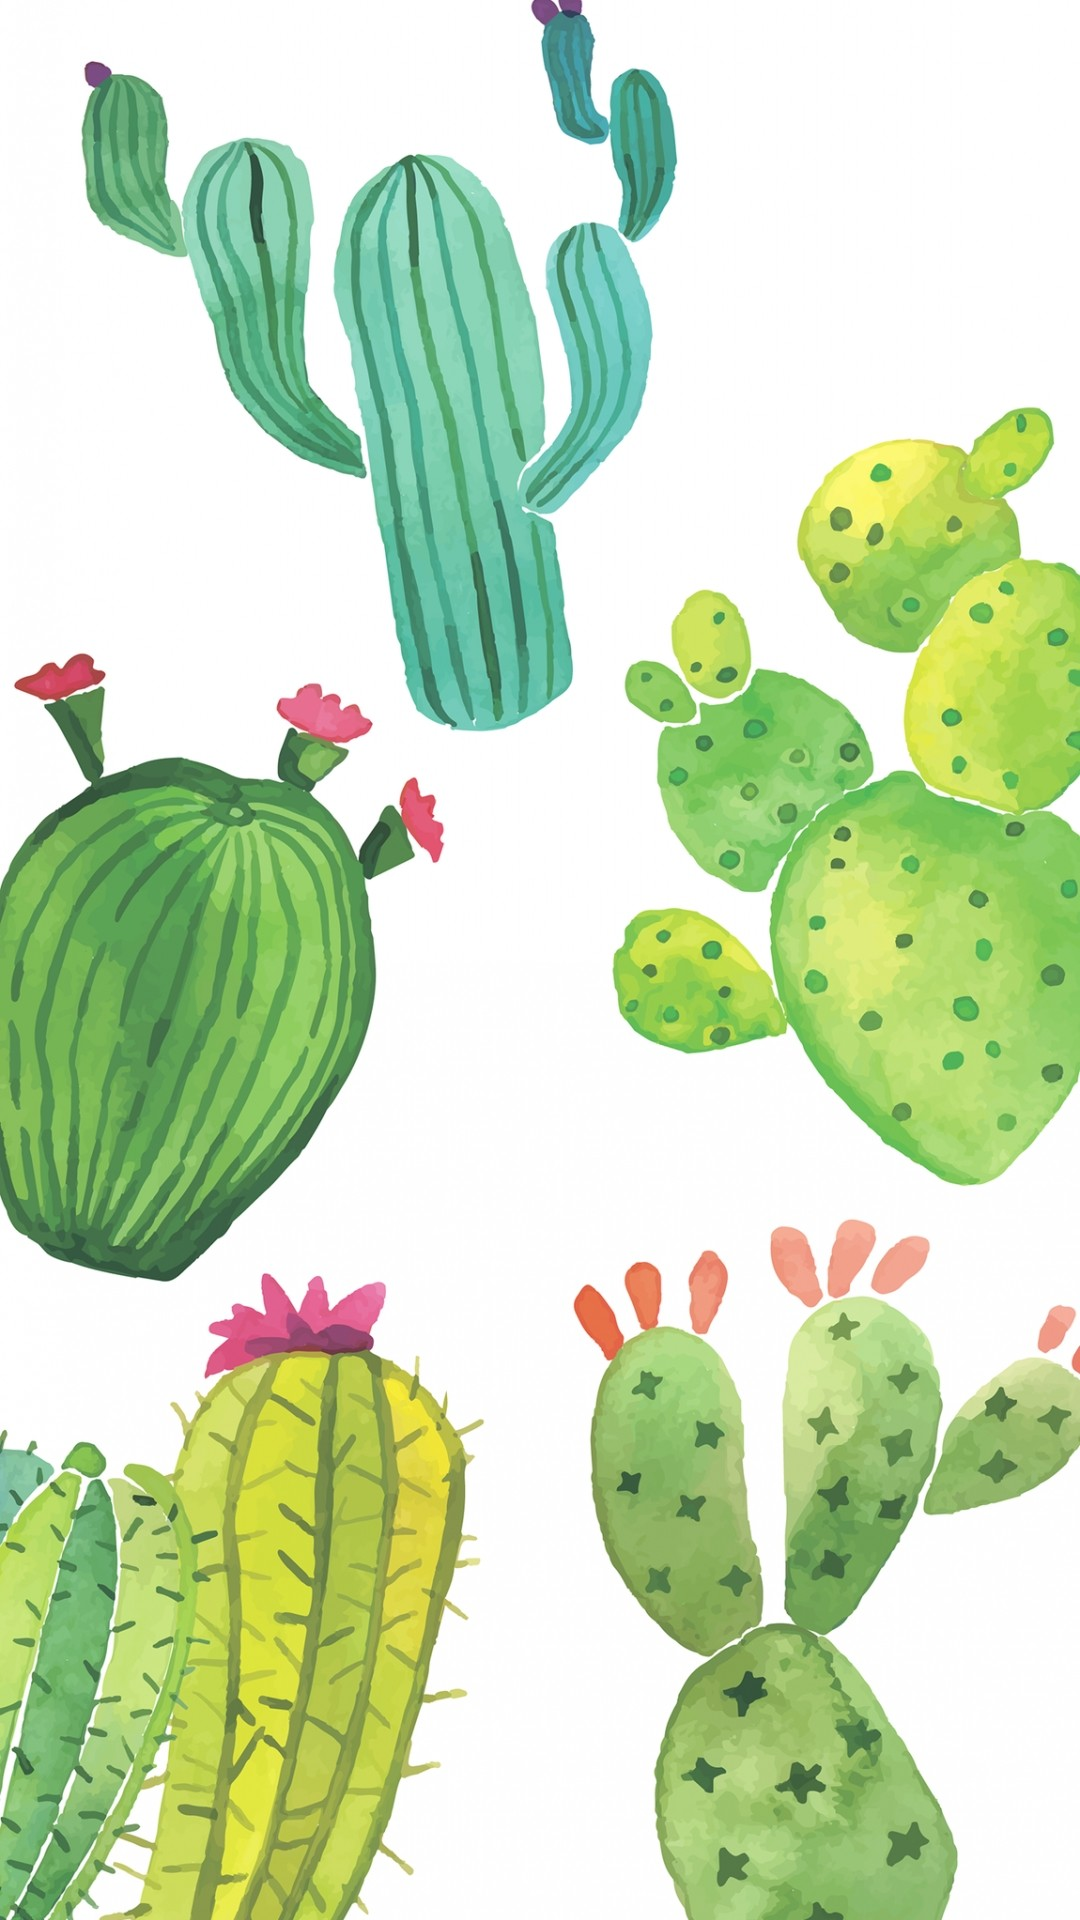 Cactus hd wallpaper for iphone